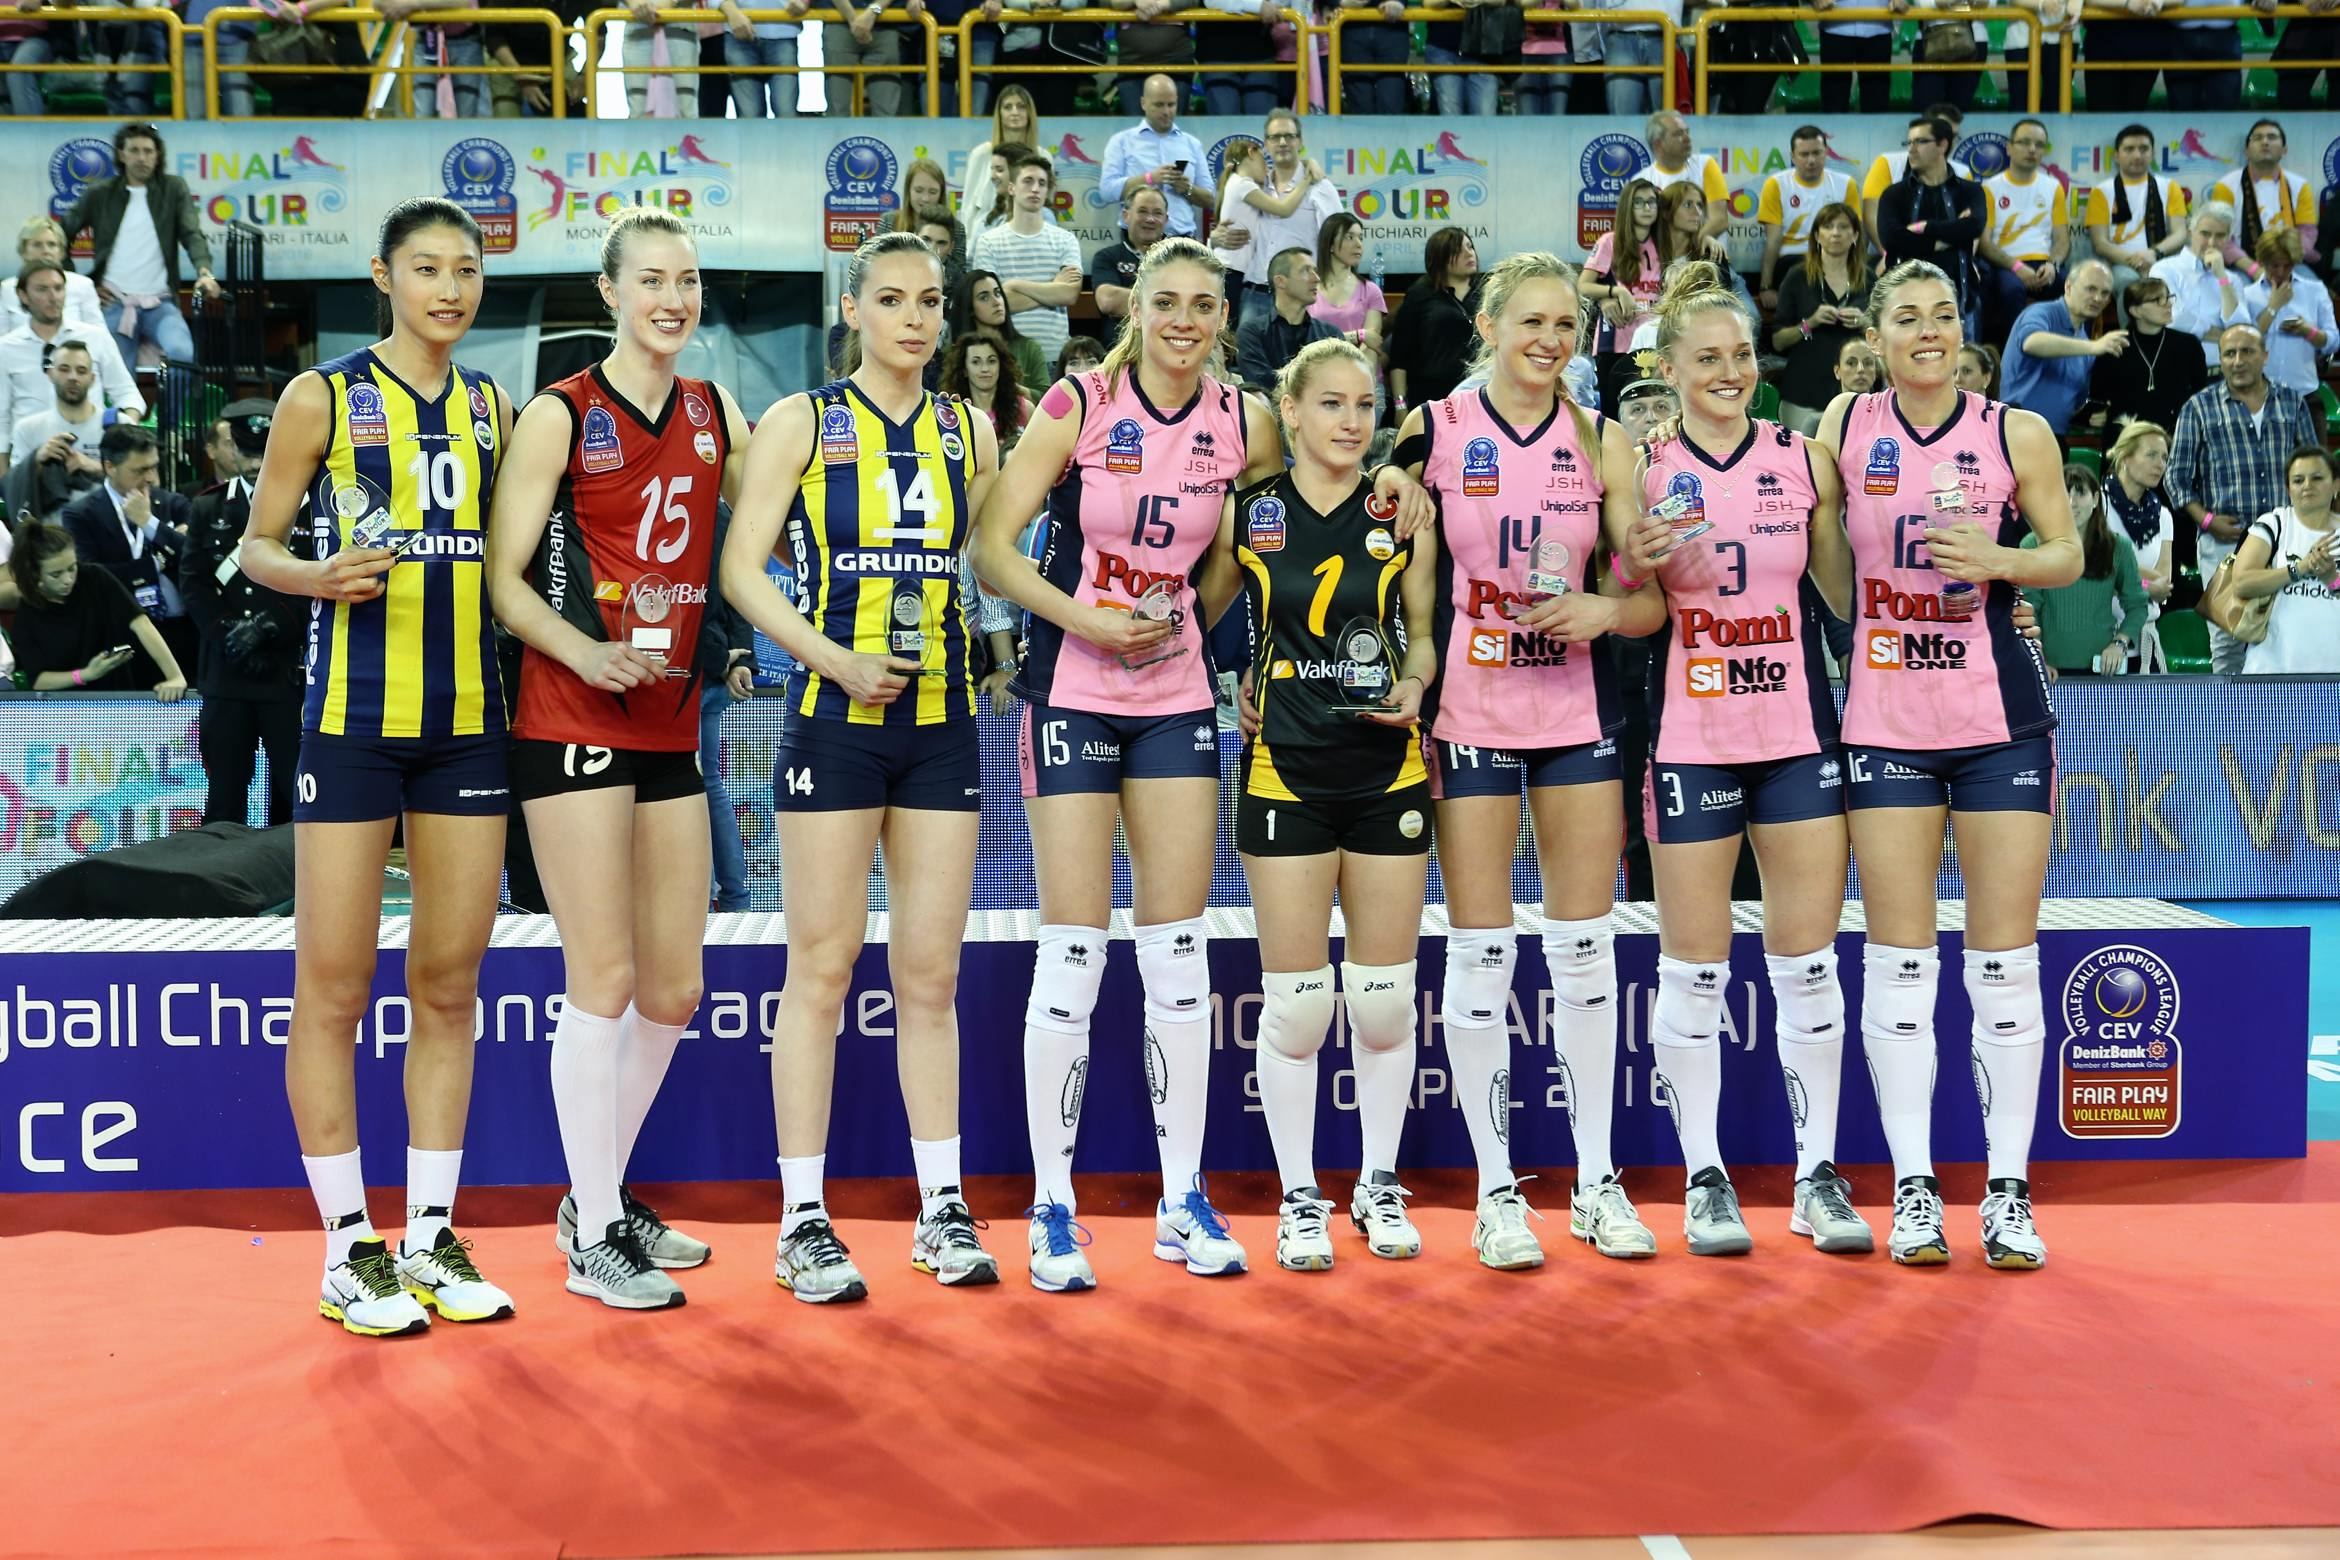 Volleyball player francesca piccinini apologise, but